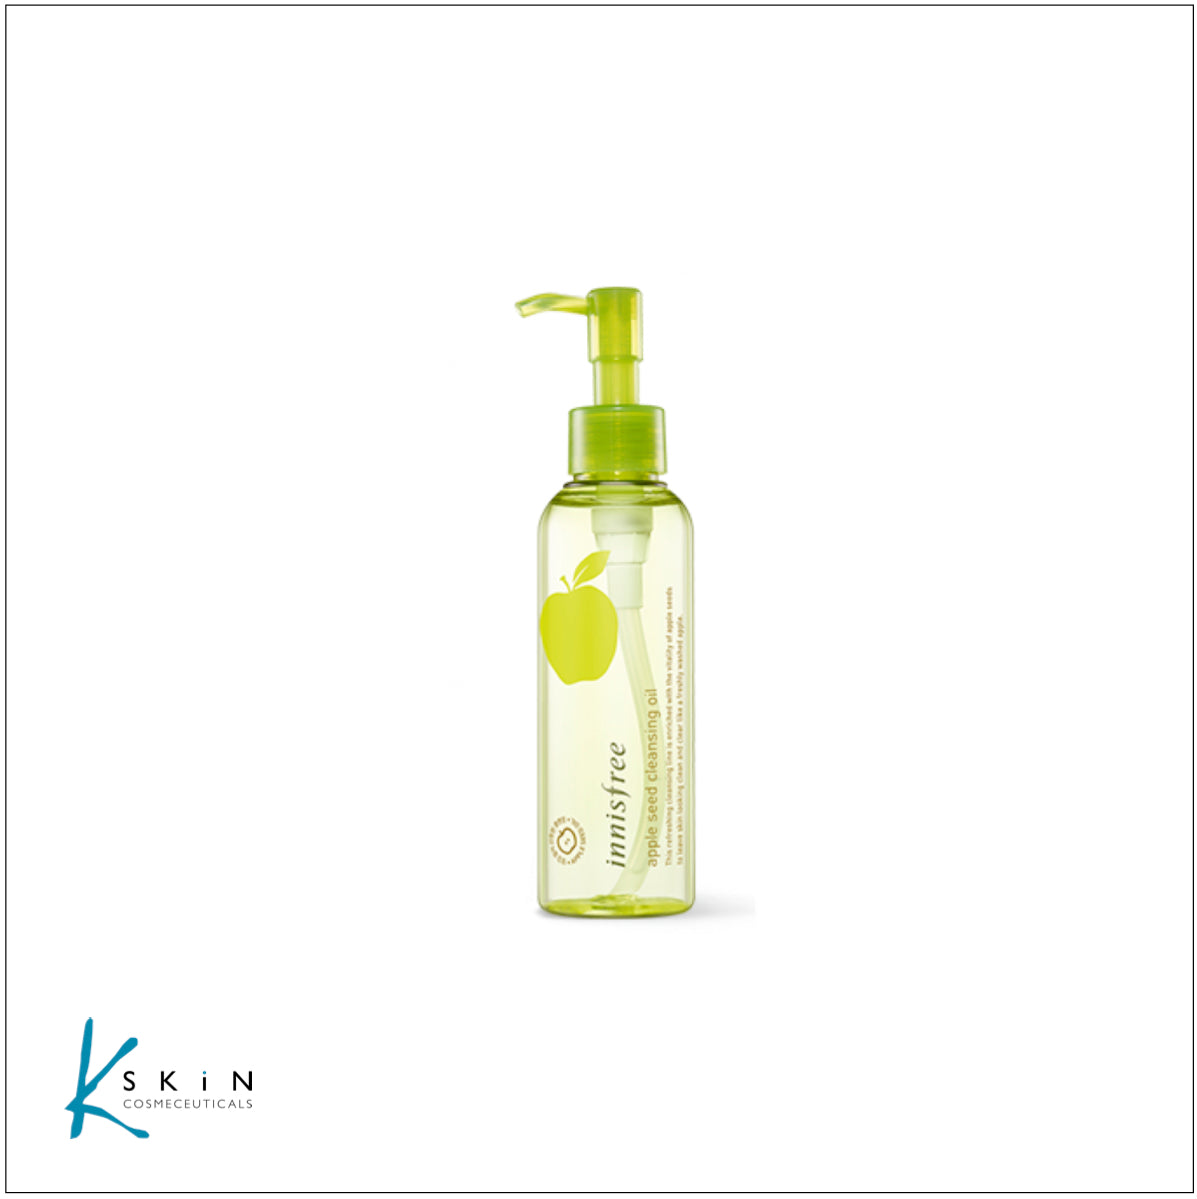 Innisfree Apple Seed Cleansing Oil 150ml - www.Kskin.ie